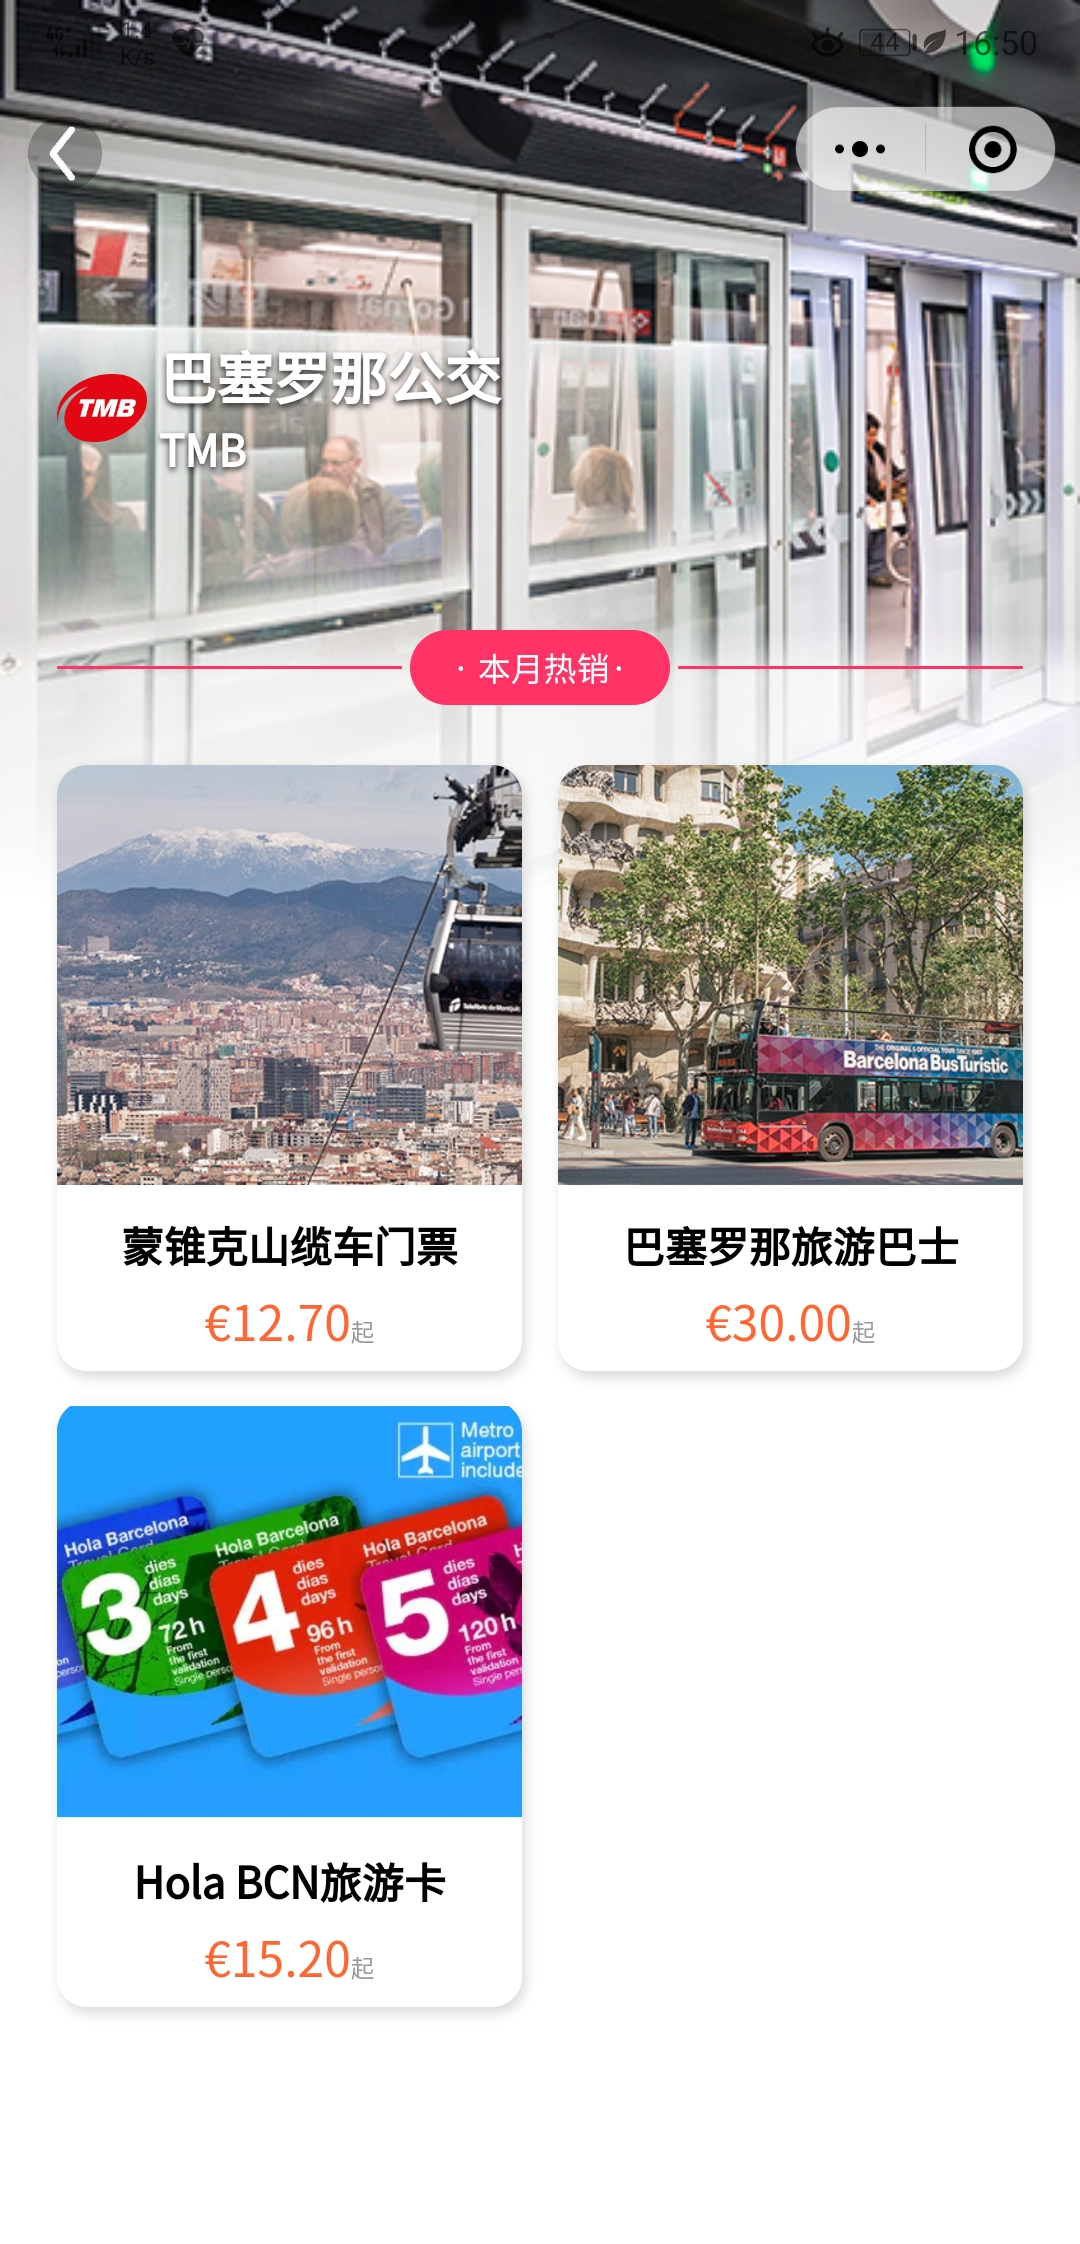 Transports Metropolitans de Barcelona WeChat Ticketing